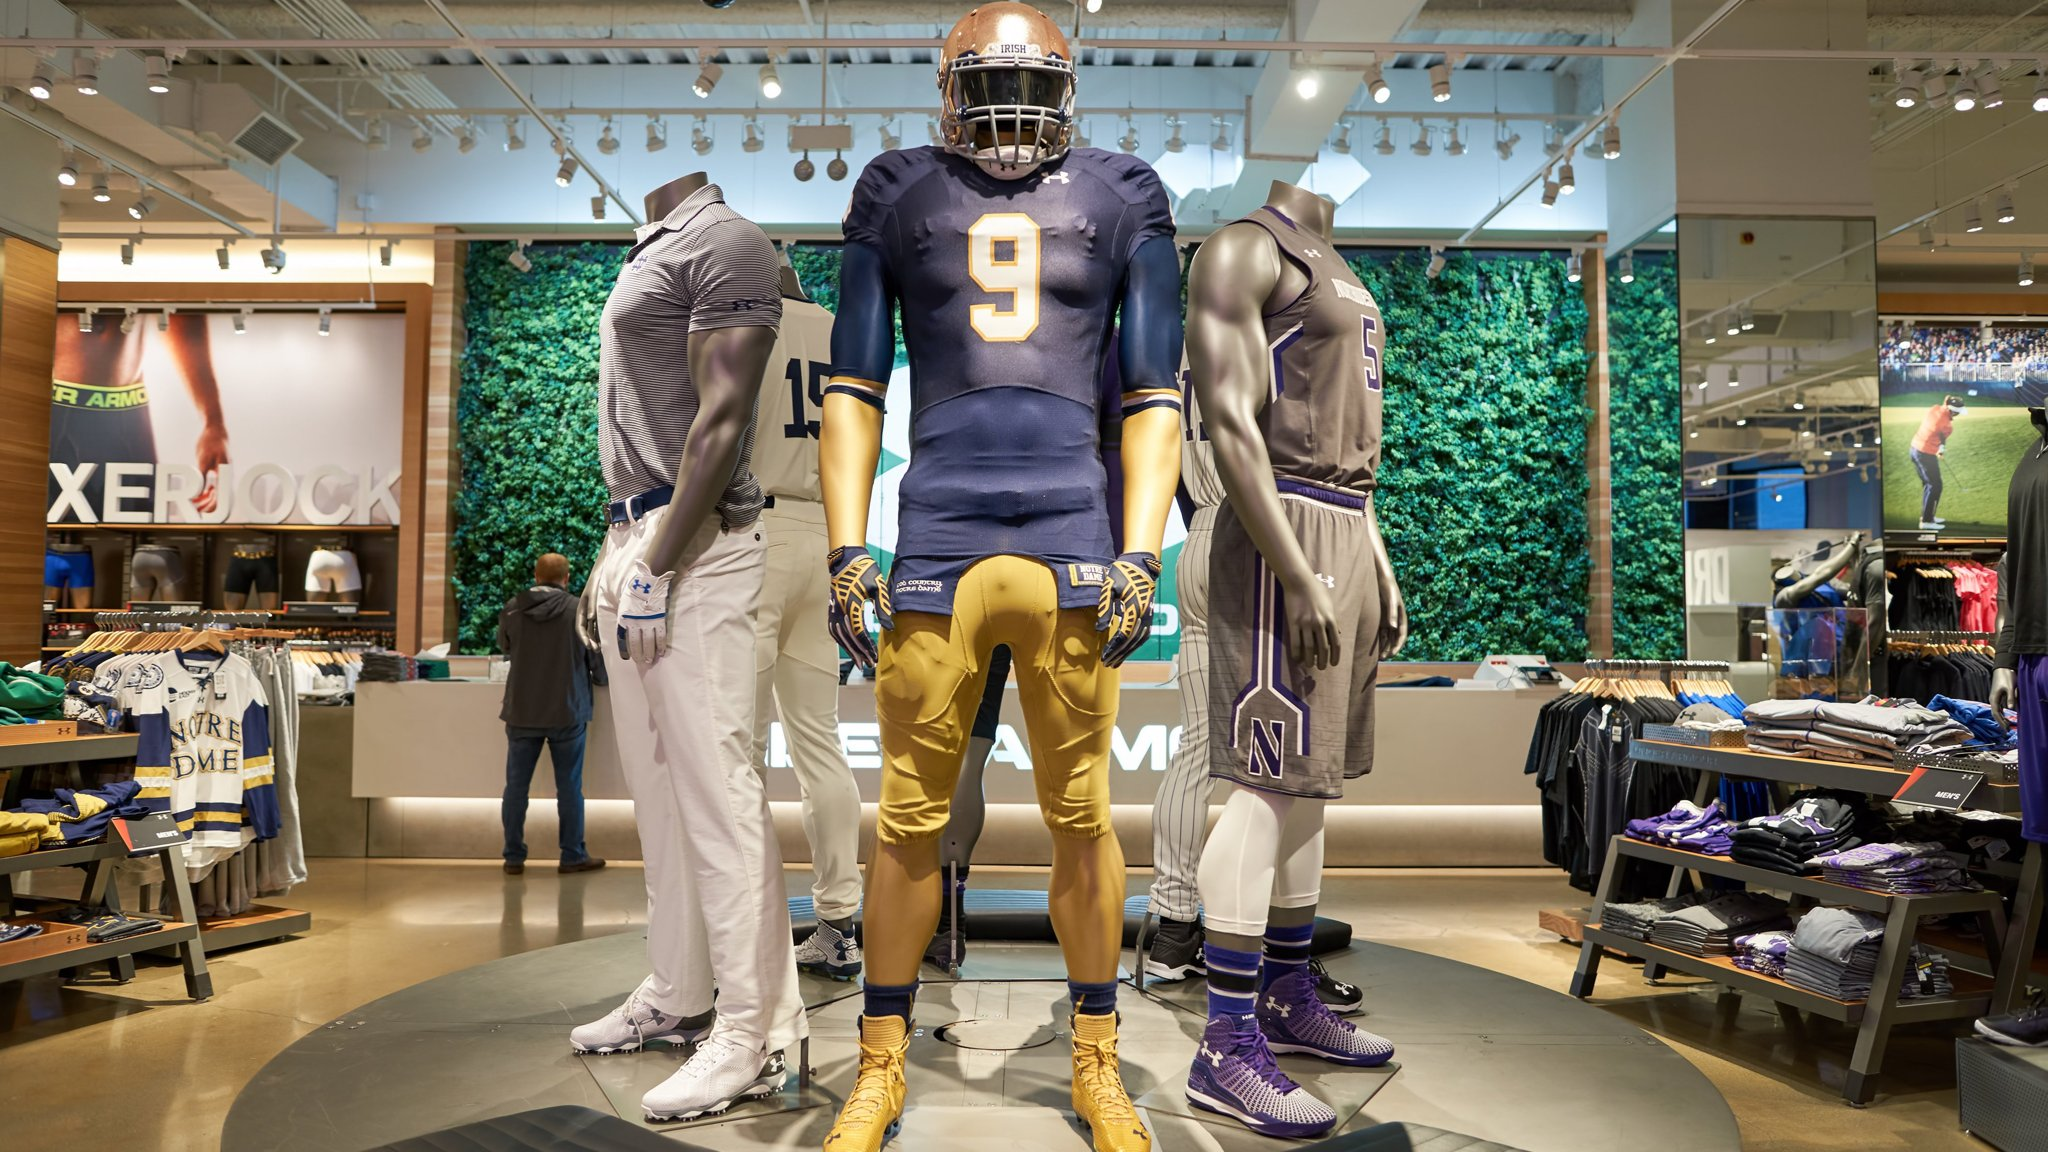 98a859820 Under Armour breaks from 'athleisure' craze | Financial Times